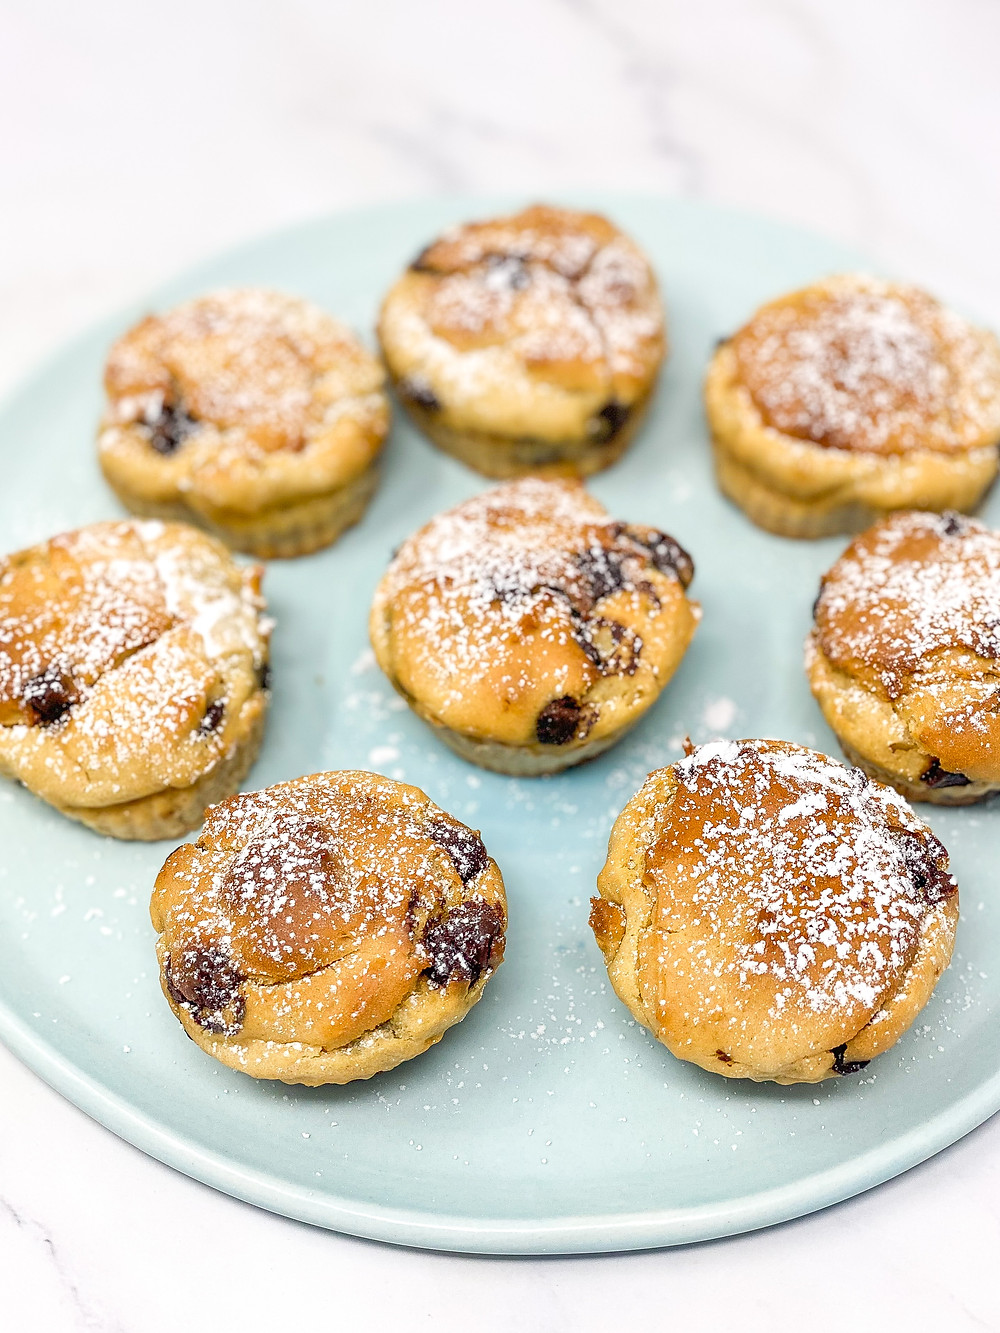 KIDS RICOTTA MUFFINS on the plate